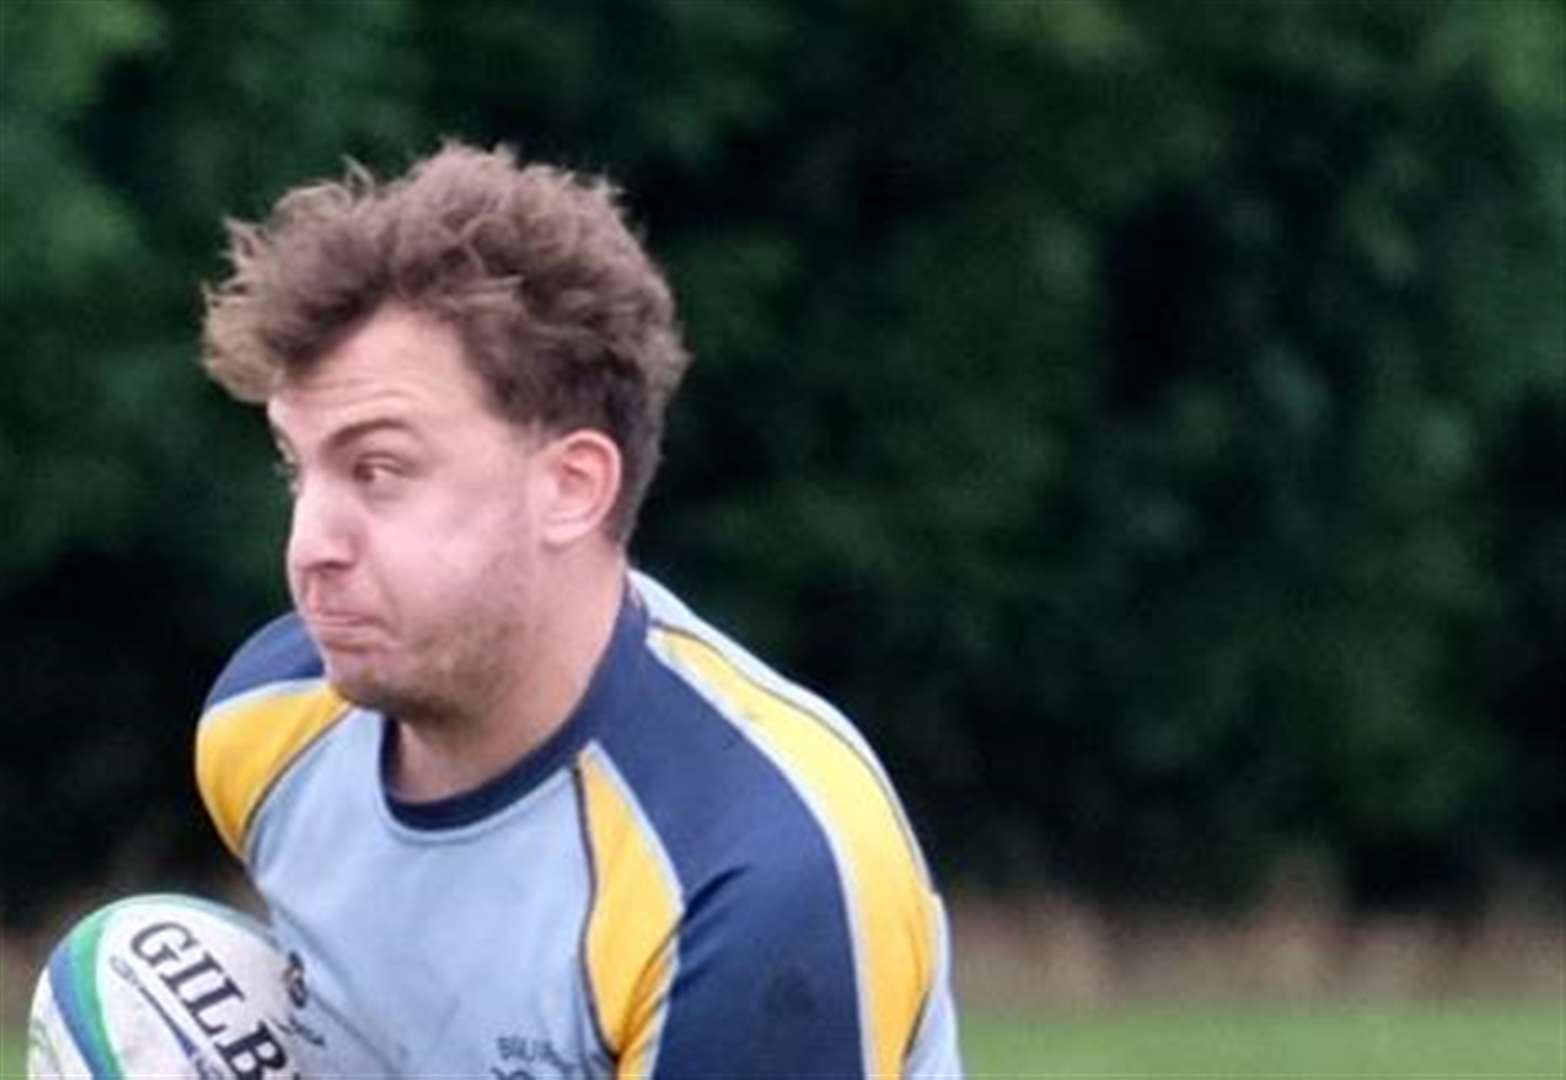 RUGBY: Back-to-back wins for Bourne for first time this season